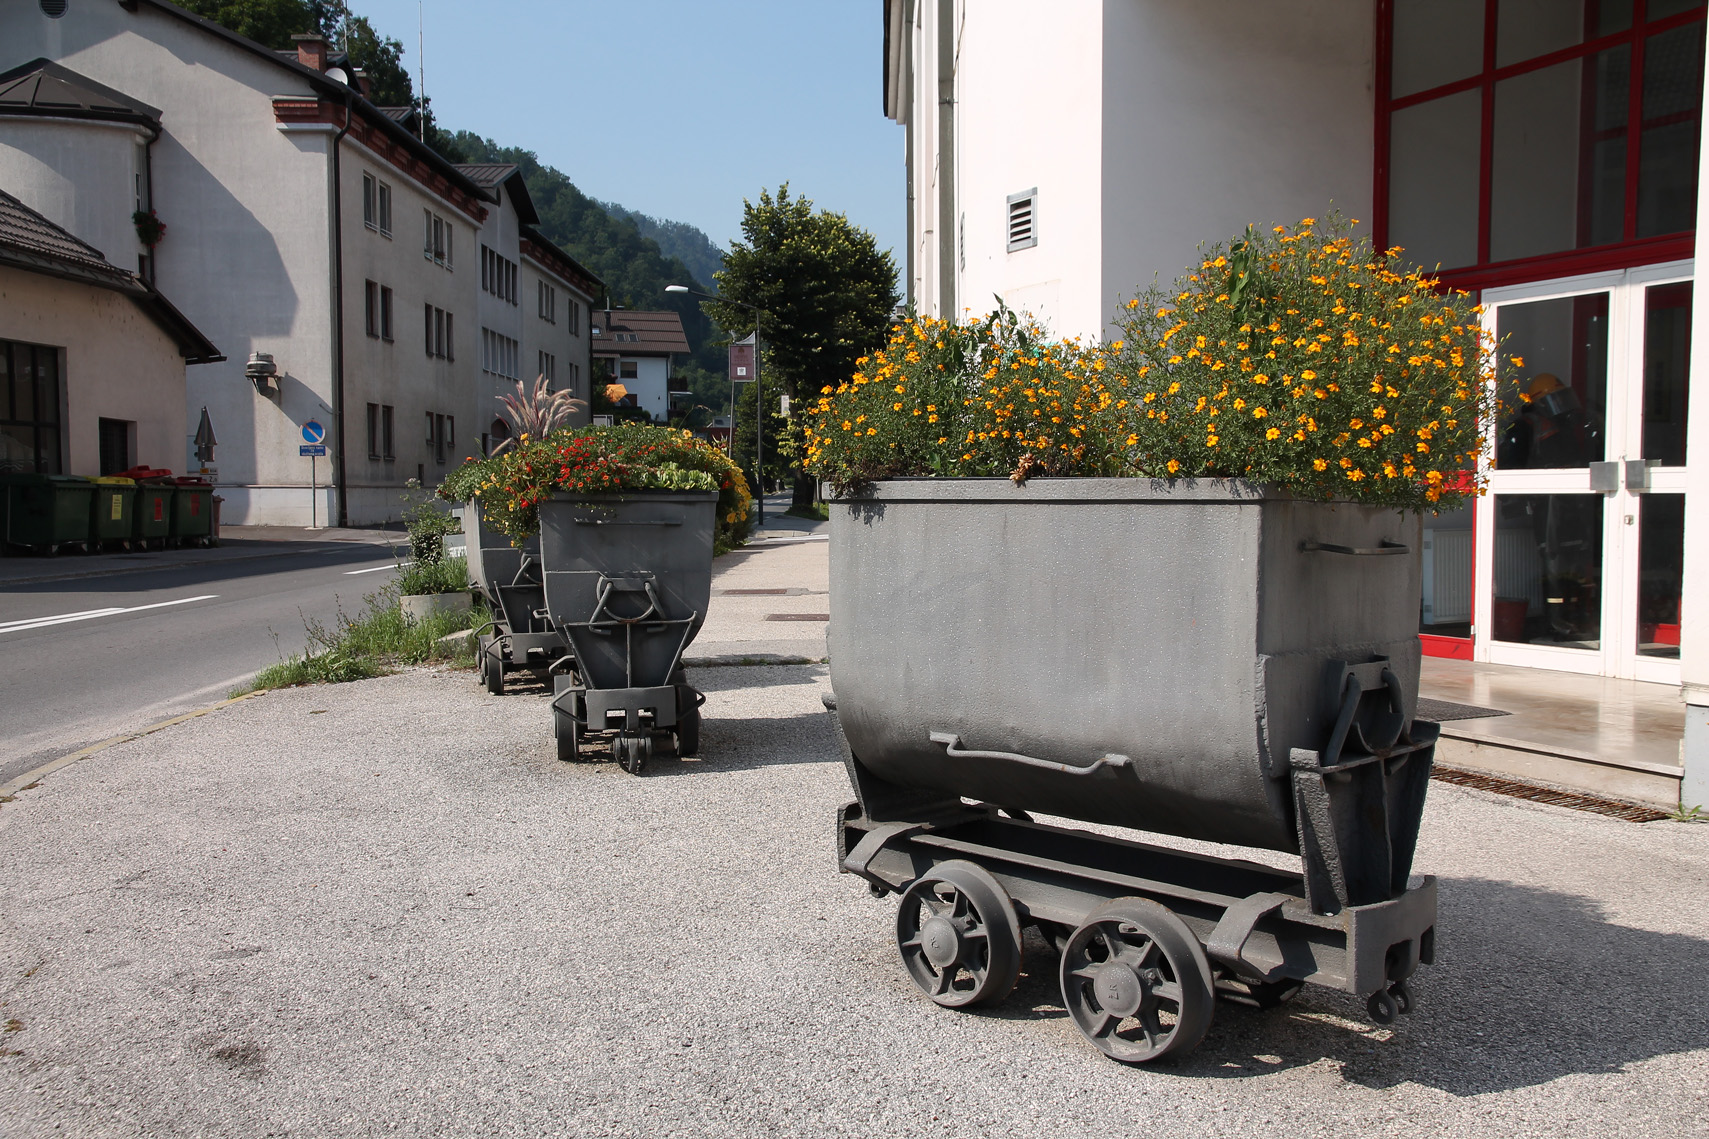 Mine carts, used as flower pots, in front of the fire station.